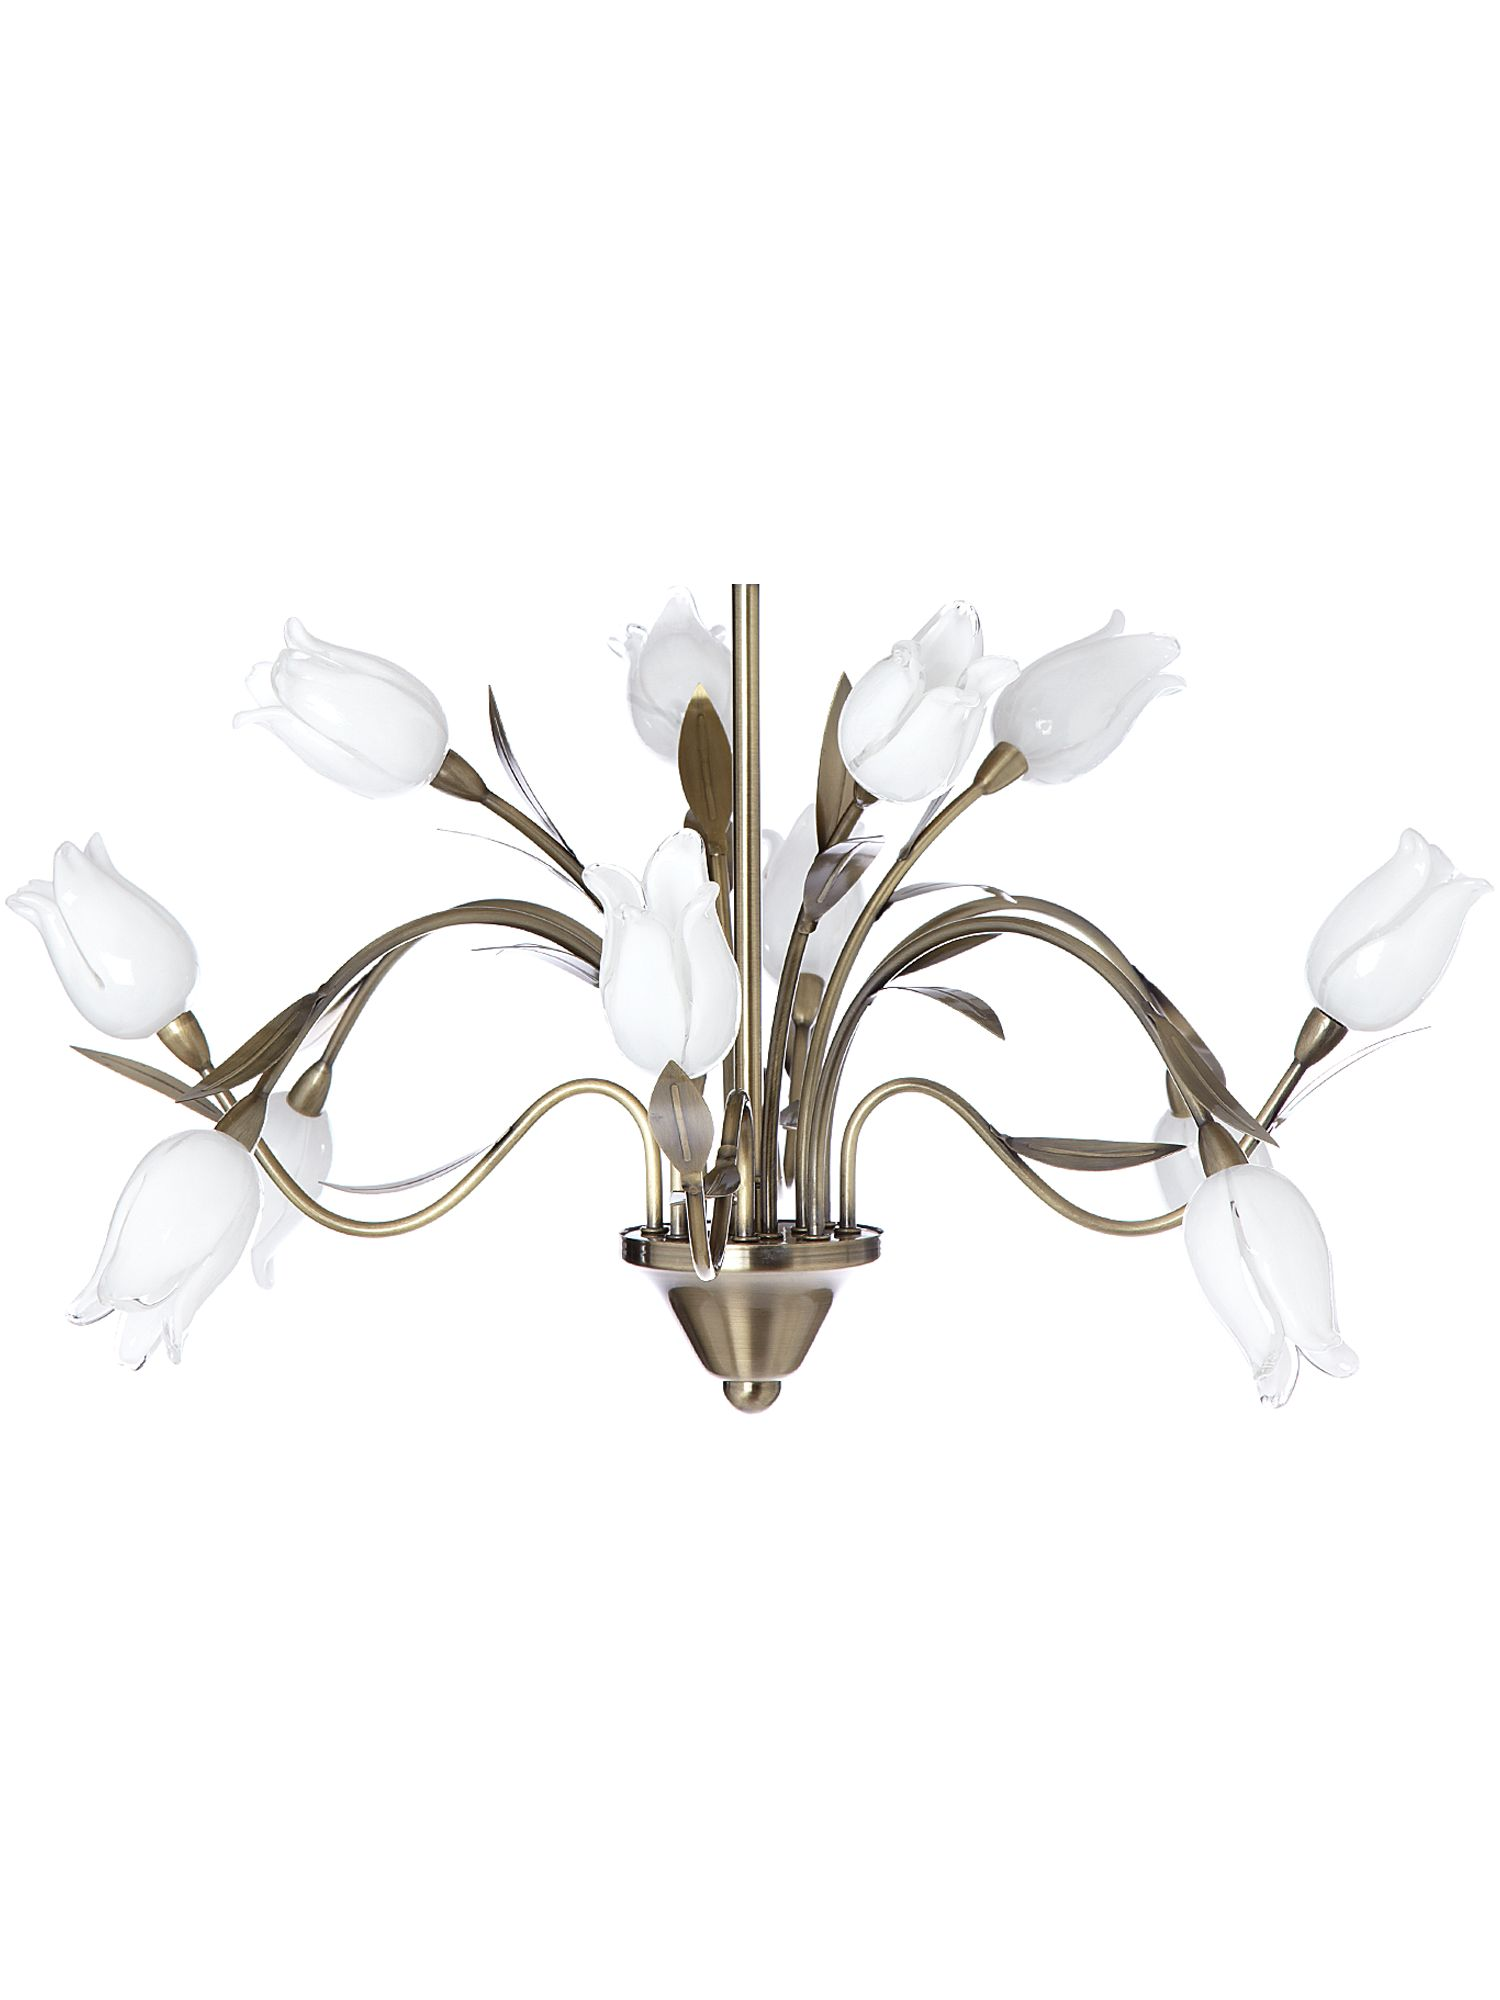 Philomena armed ceiling light by House of Fraser